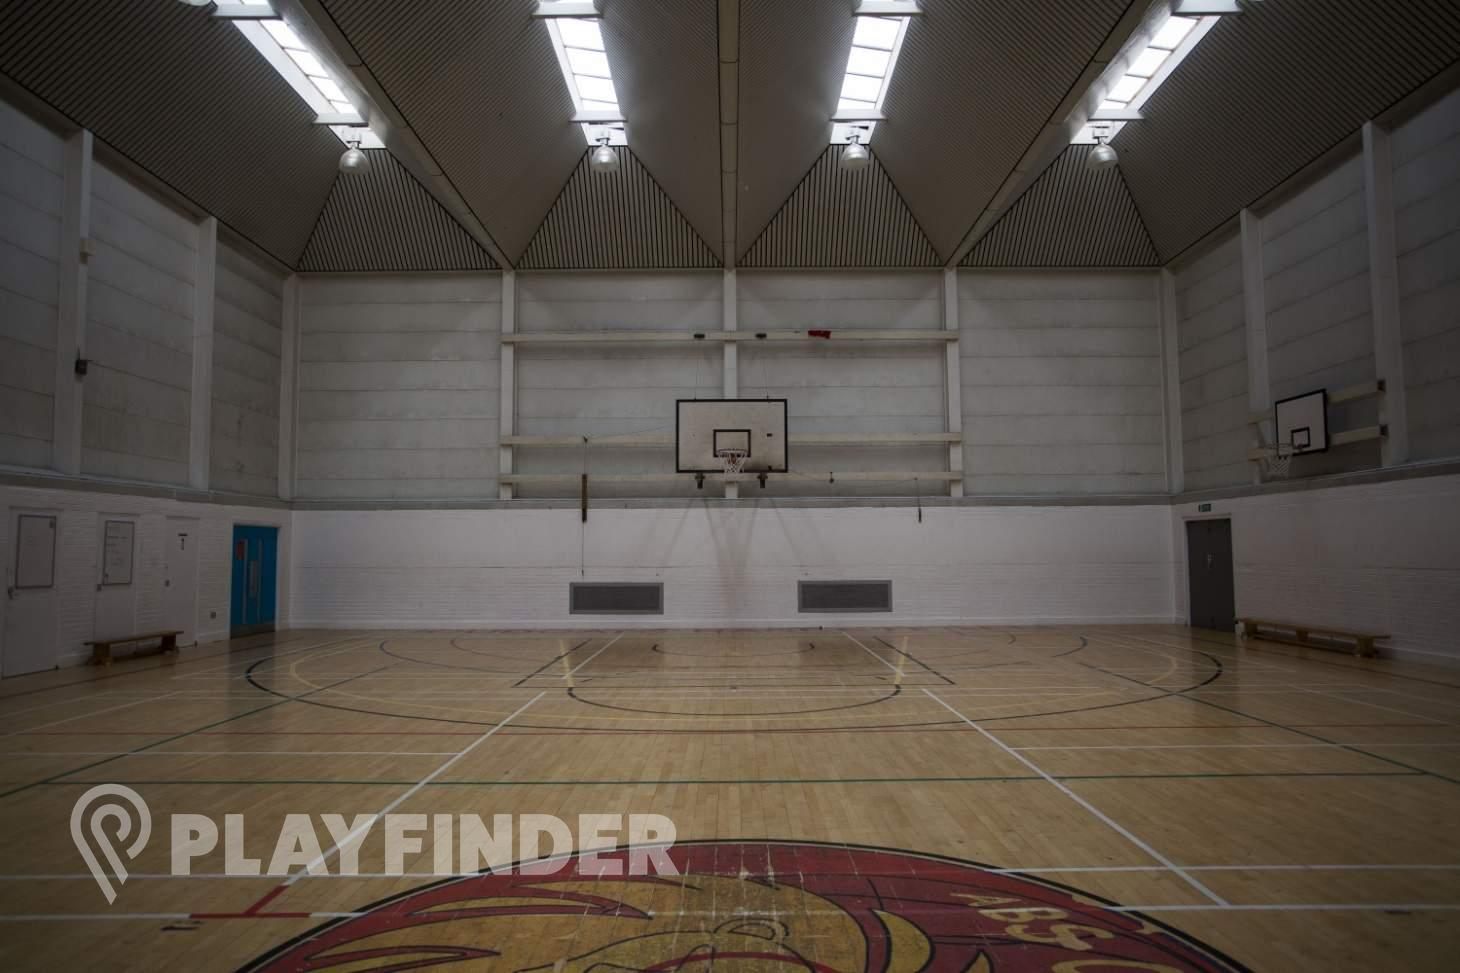 Acland Burghley School Indoor basketball court